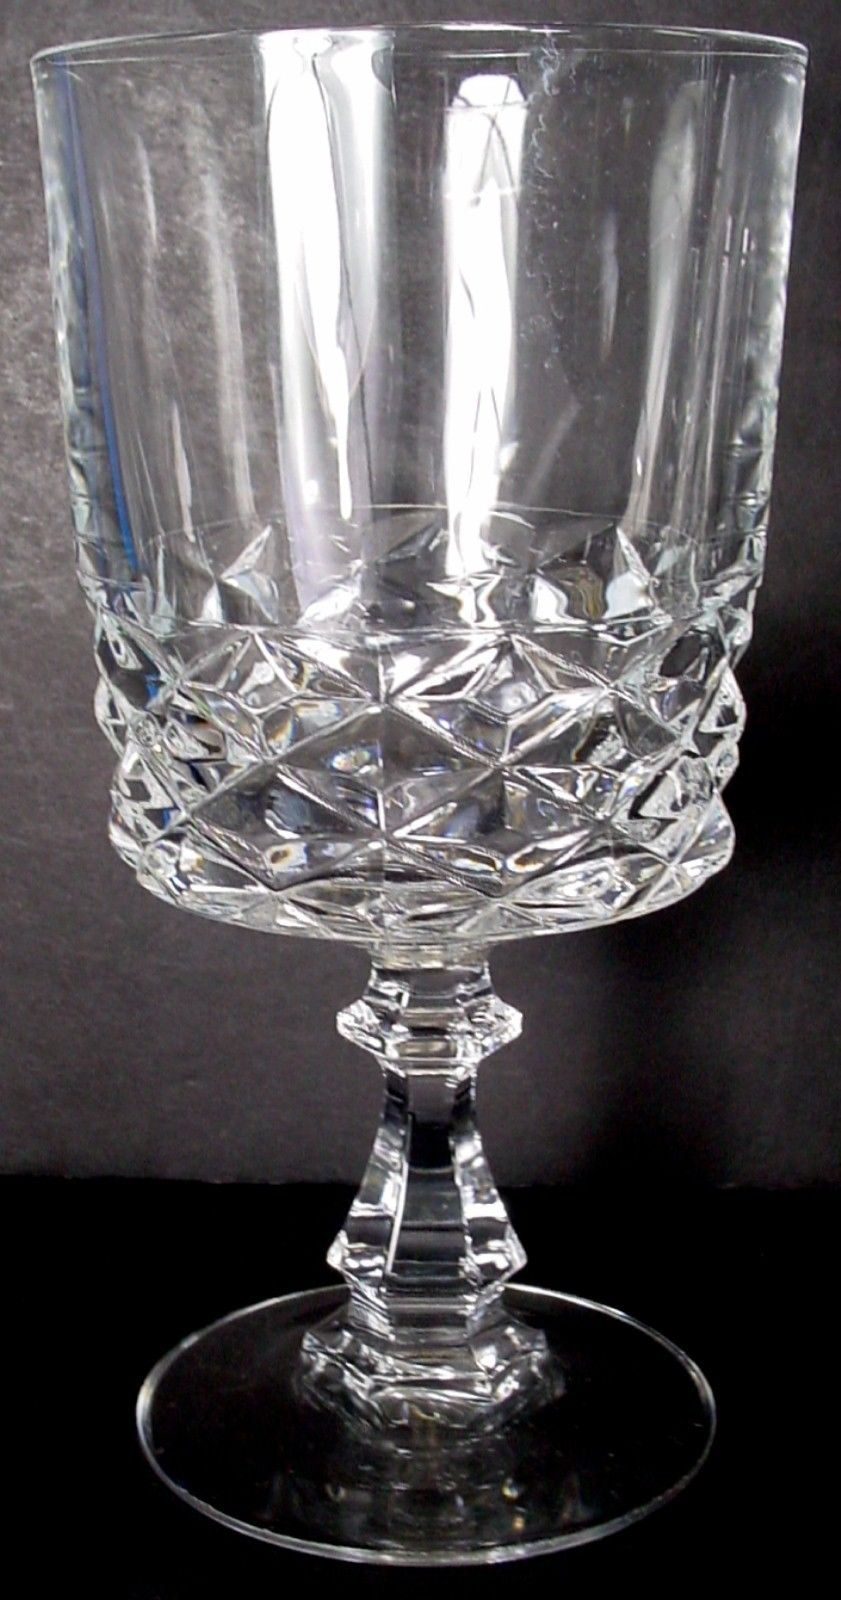 CRISTAL D'ARQUES Durand crystal DIAMOND pattern WATER GOBLET 6-1/4